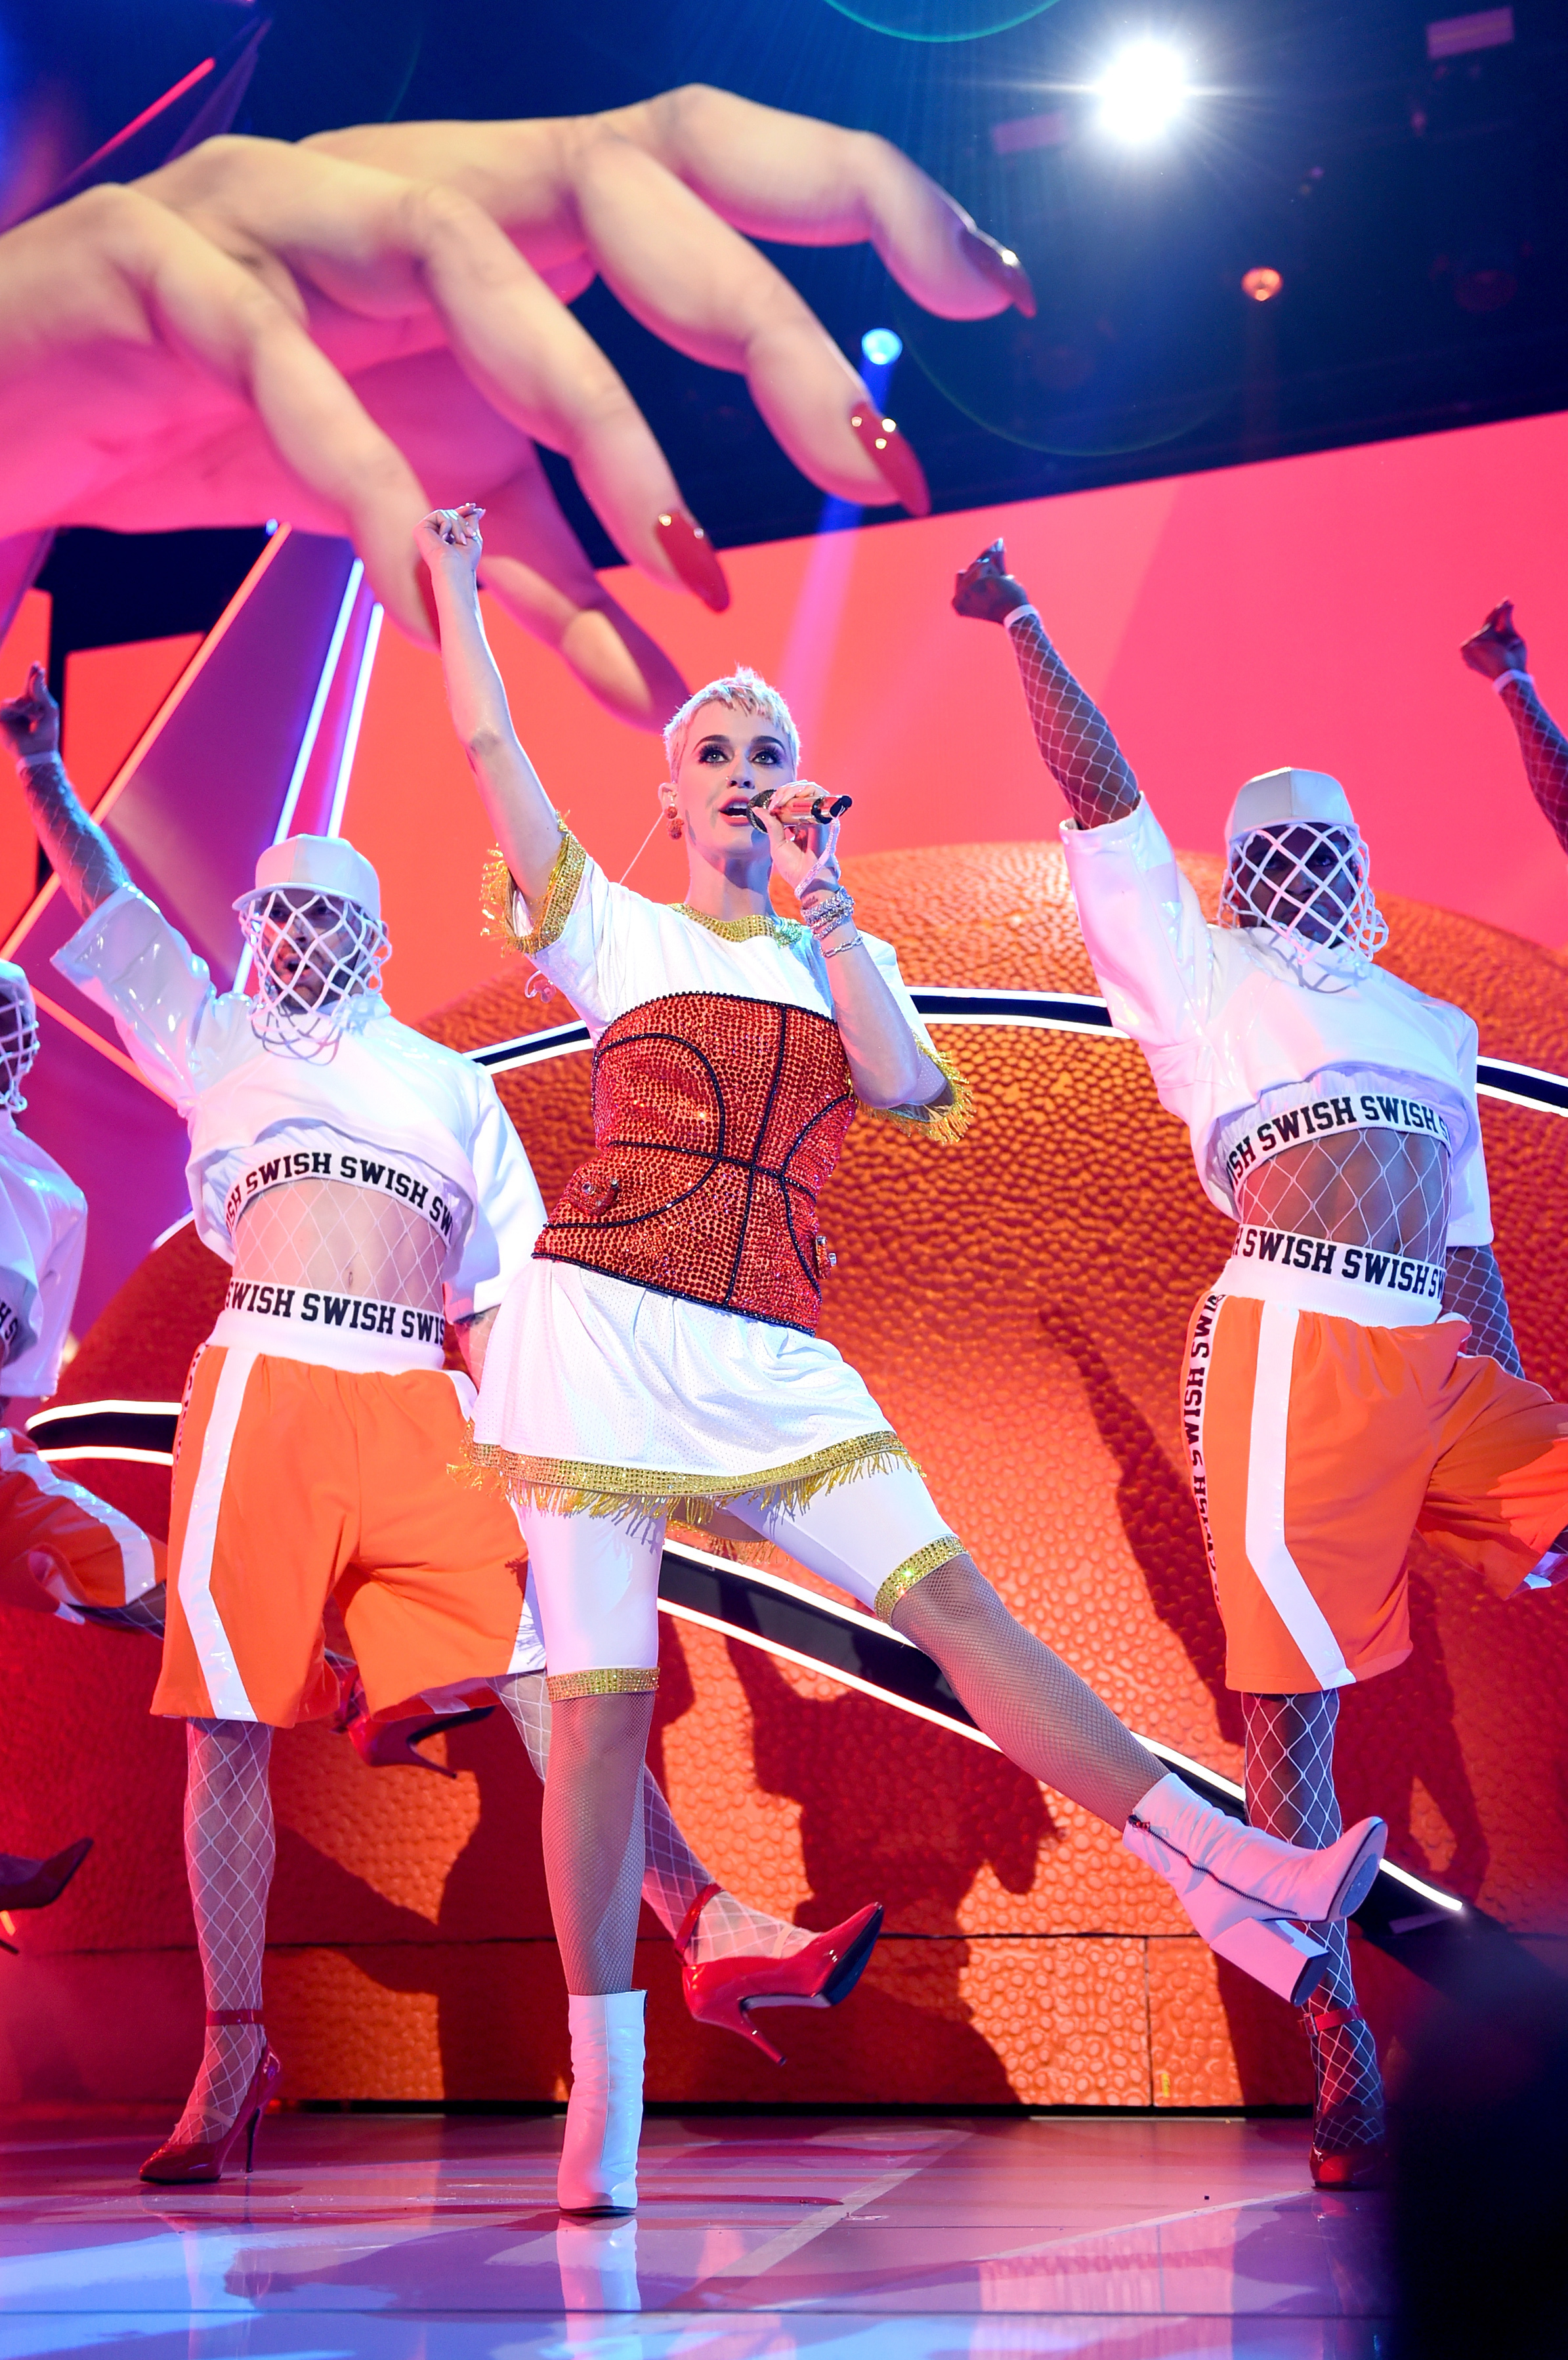 Katy Perry performs onstage during the 2017 MTV Video Music Awards in Los Angeles on Aug. 27, 2017.